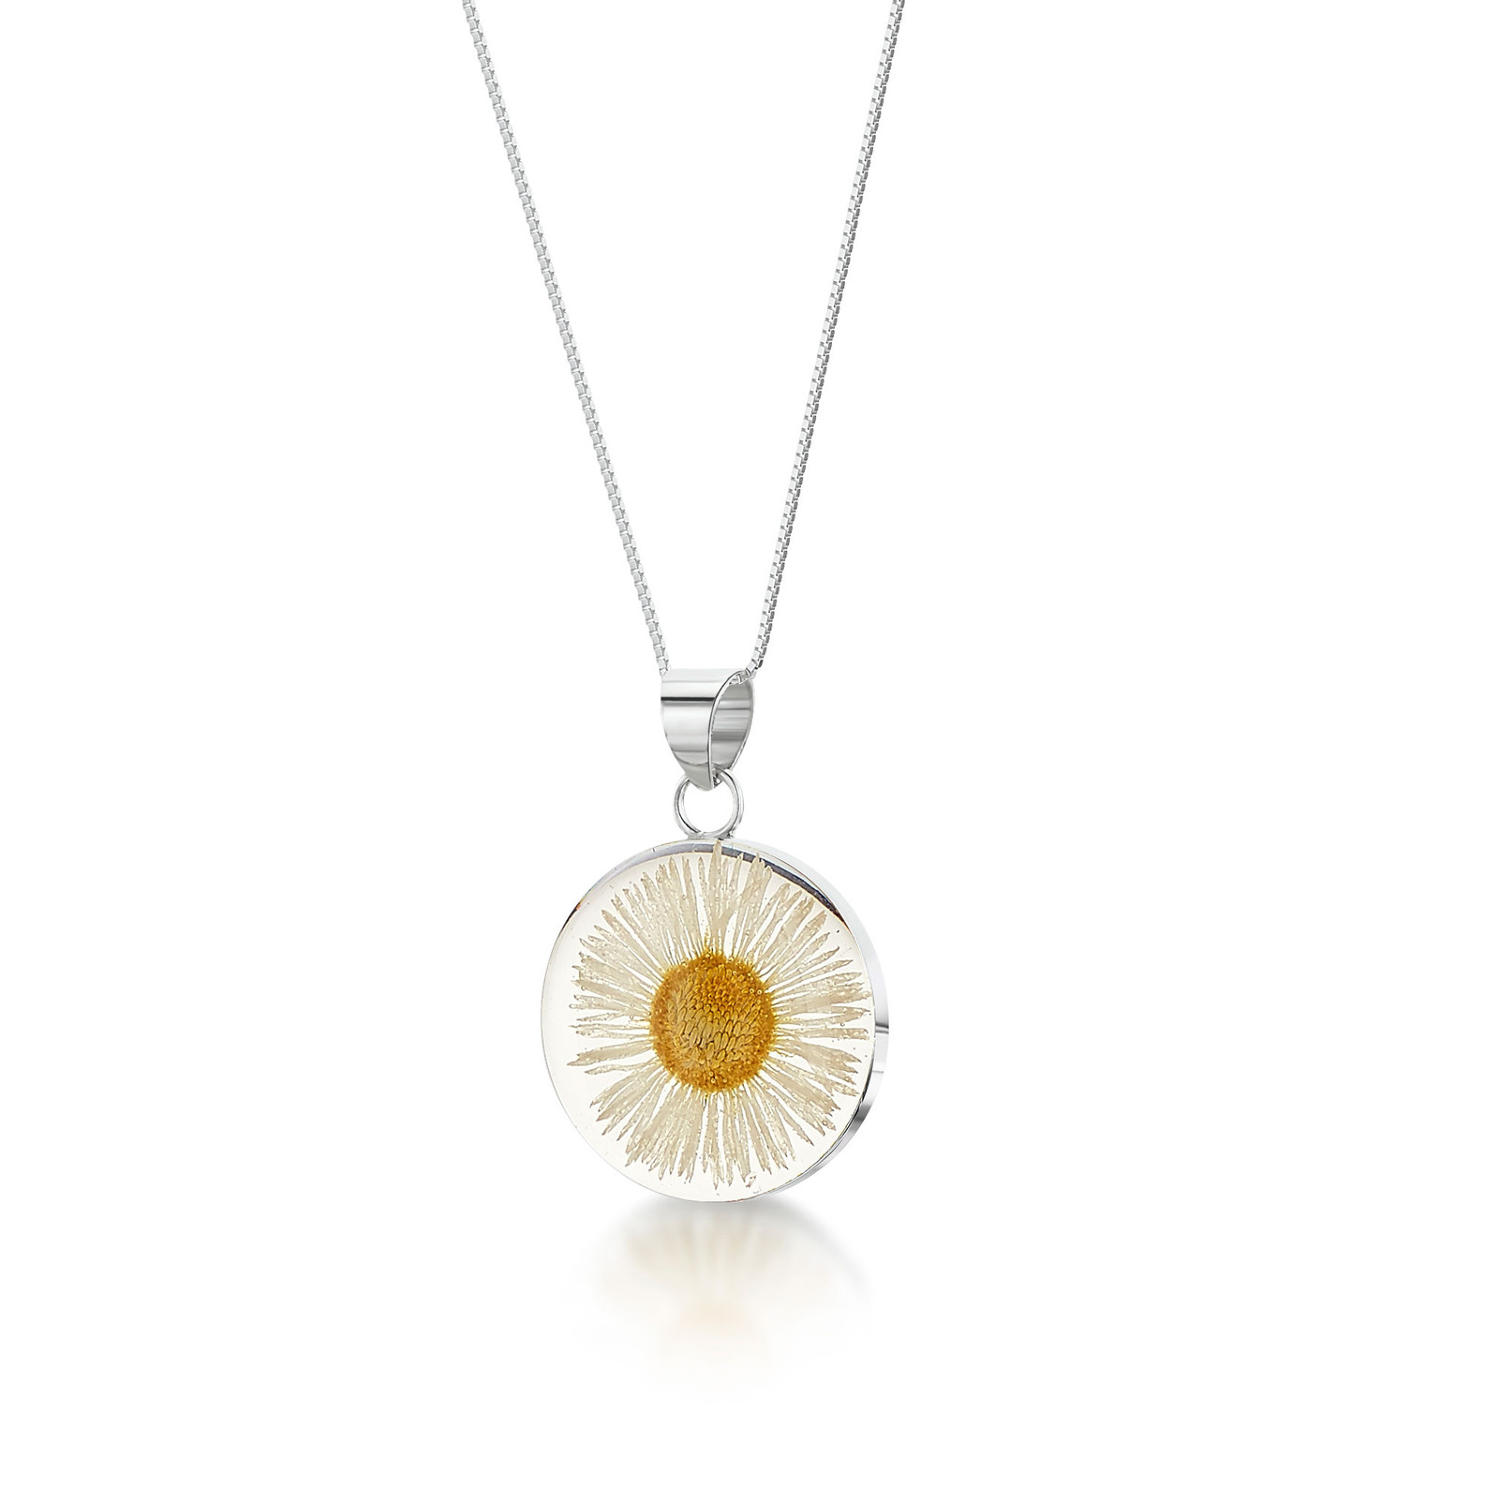 Daisy Medium Round Pendant